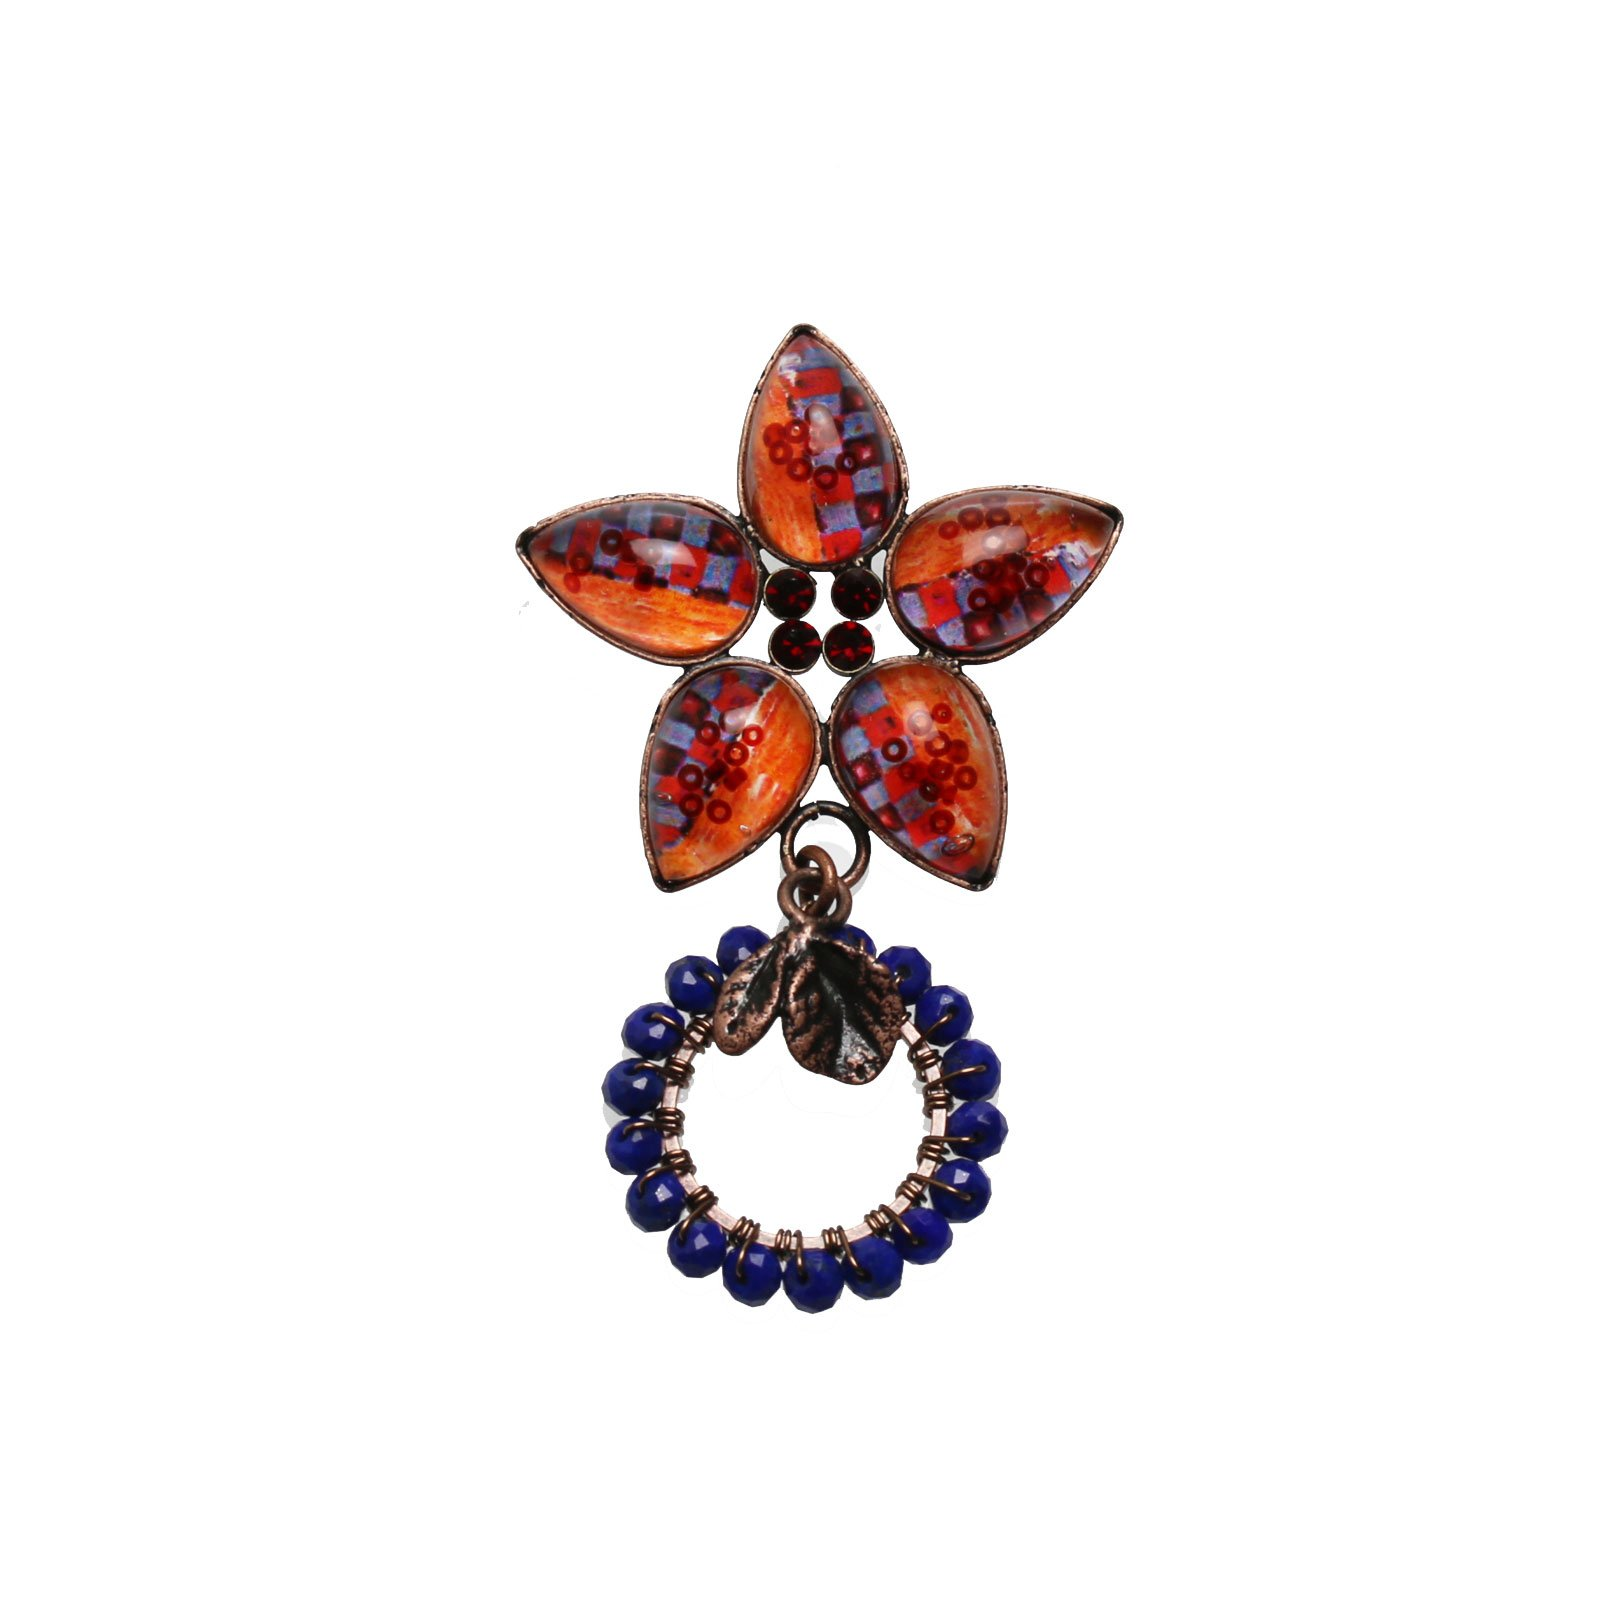 Tamarusan Glasses Holder Brooch Lapis Lazuli Orange Flower Blue by TAMARUSAN